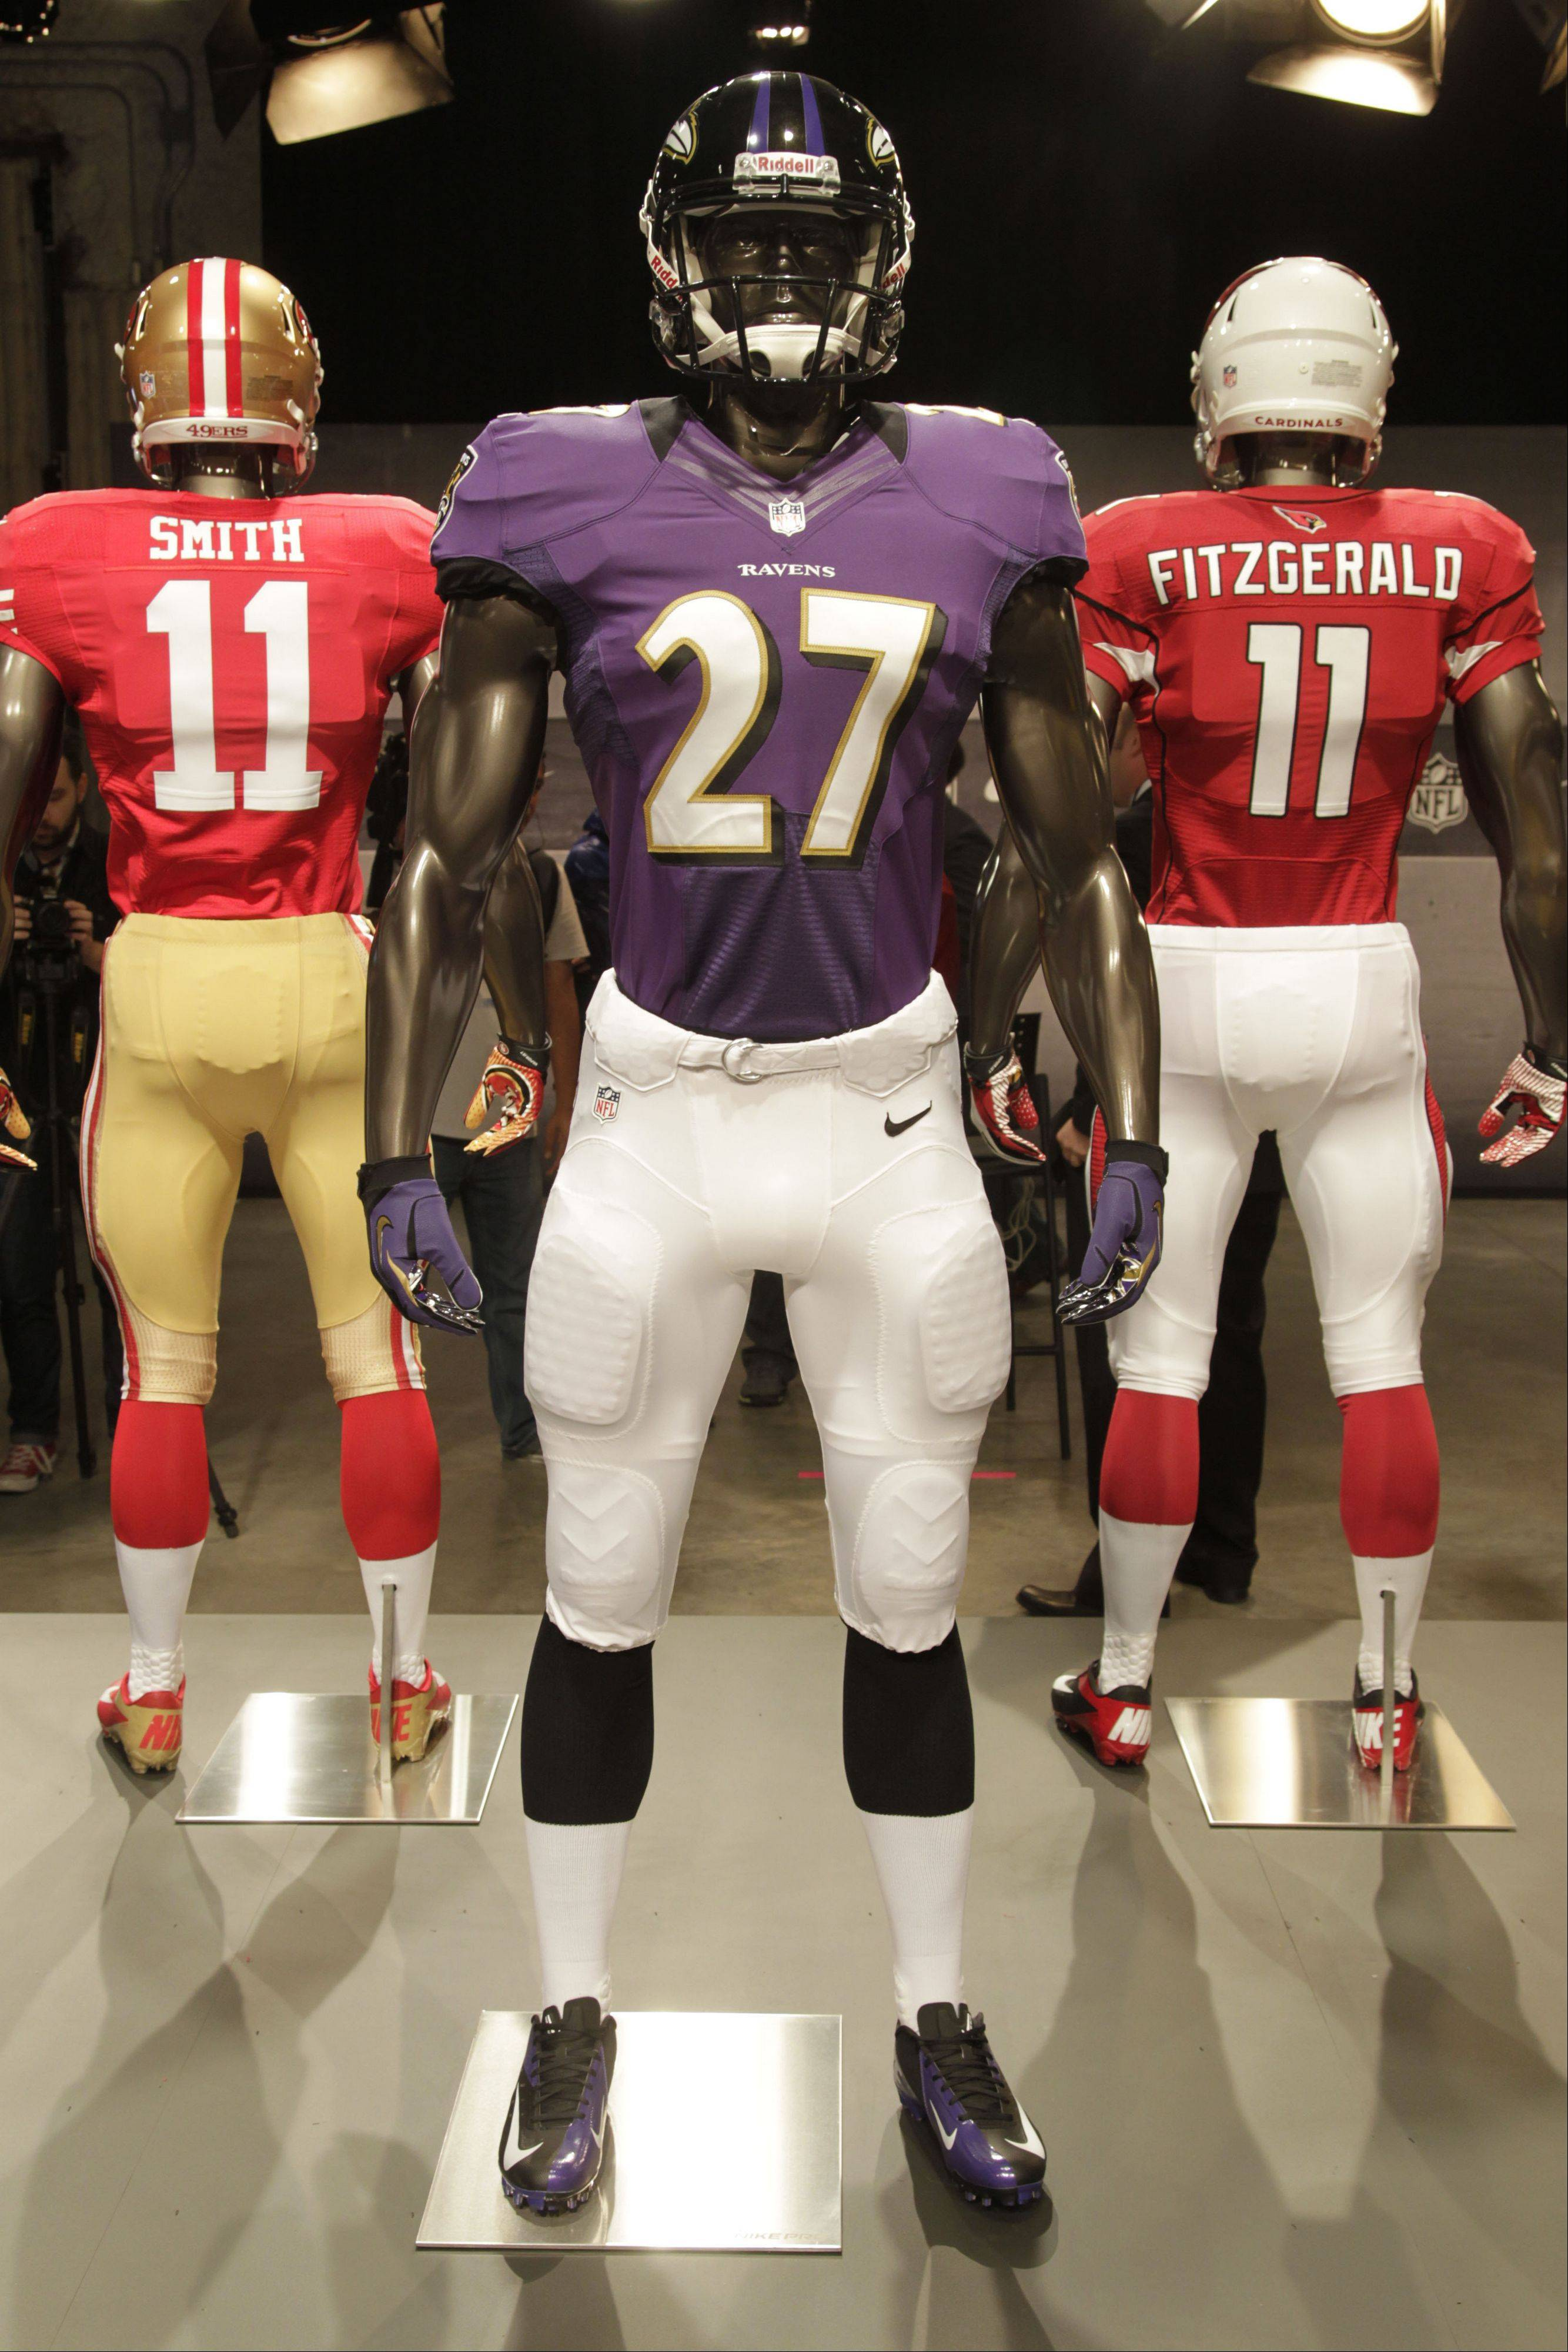 The new Baltimore Ravens uniform is displayed on a mannequin in New York, Tuesday, April 3, 2012. NFL has unveiled its new sleek uniforms designed by Nike. While most of the new uniforms are not very different visually, they all are made with new technology that make them lighter, dryer and more comfortable.